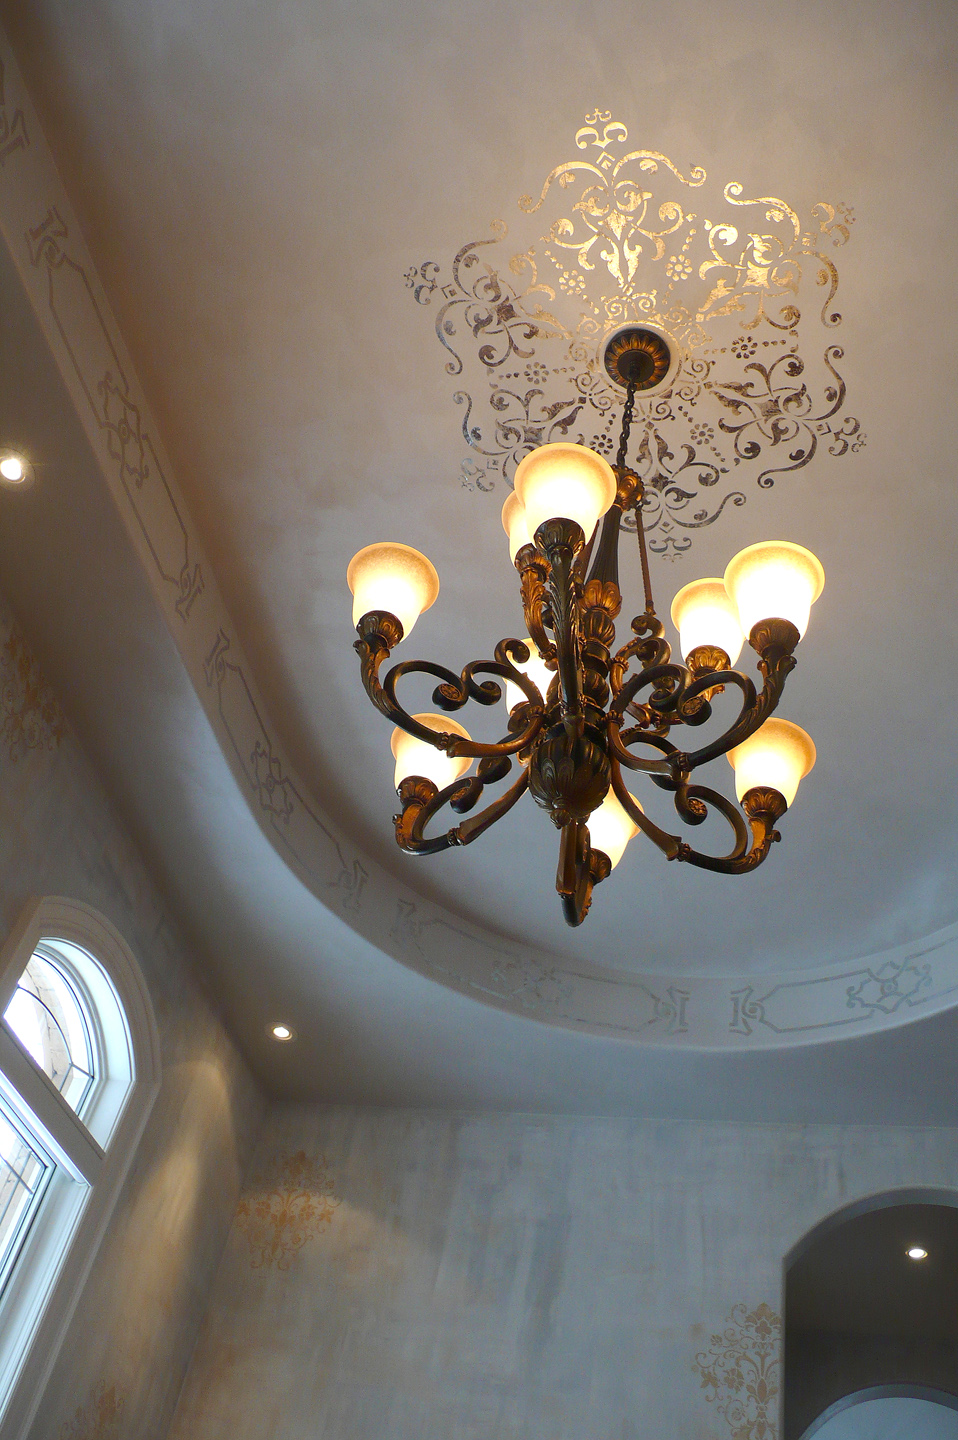 This ceiling medallion was done in imitation silver leaf and makes a very special and unique addition to this dining room.